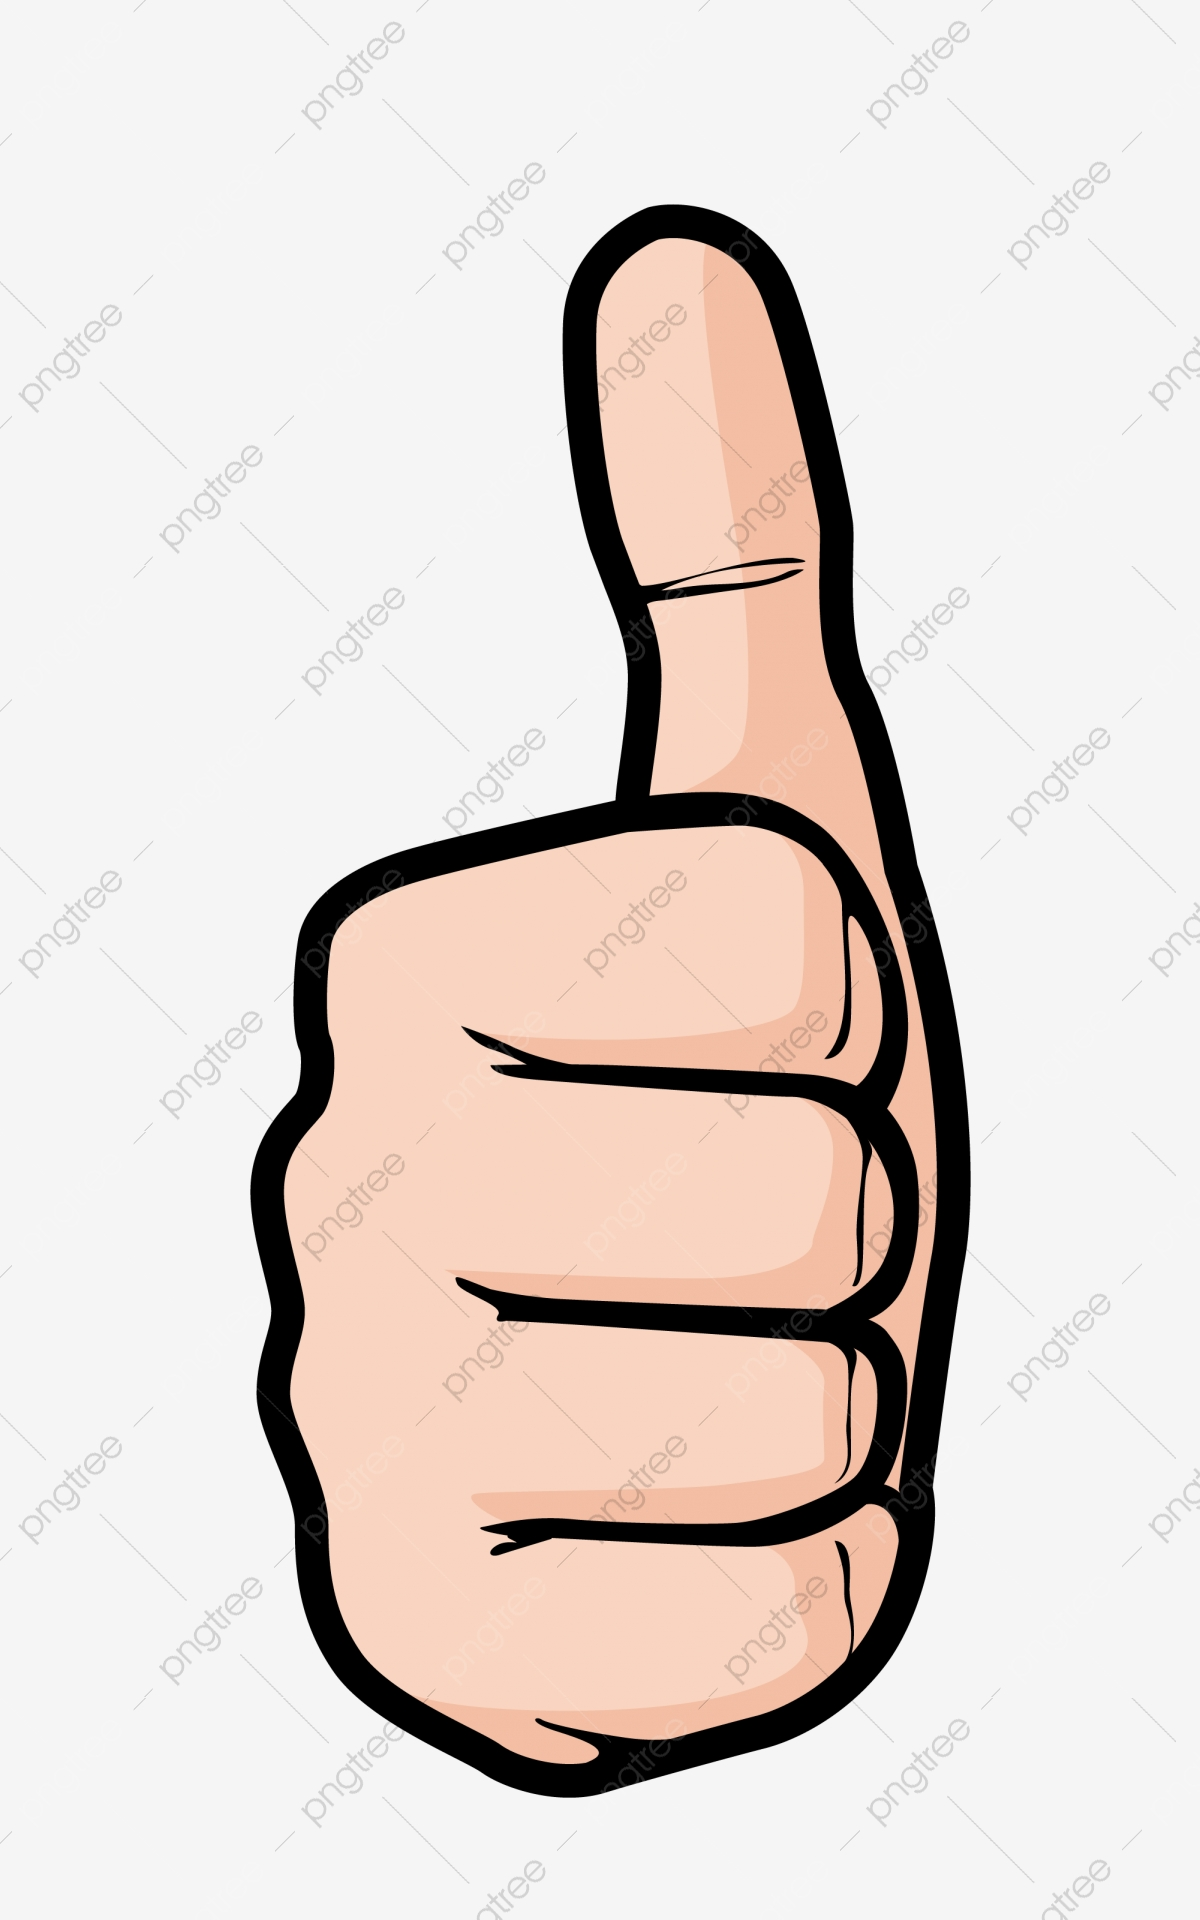 thumbs up gesture illustration thumbs up cartoon gesture illustration gesture png and vector with transparent background for free download https pngtree com freepng thumbs up gesture illustration 4559343 html